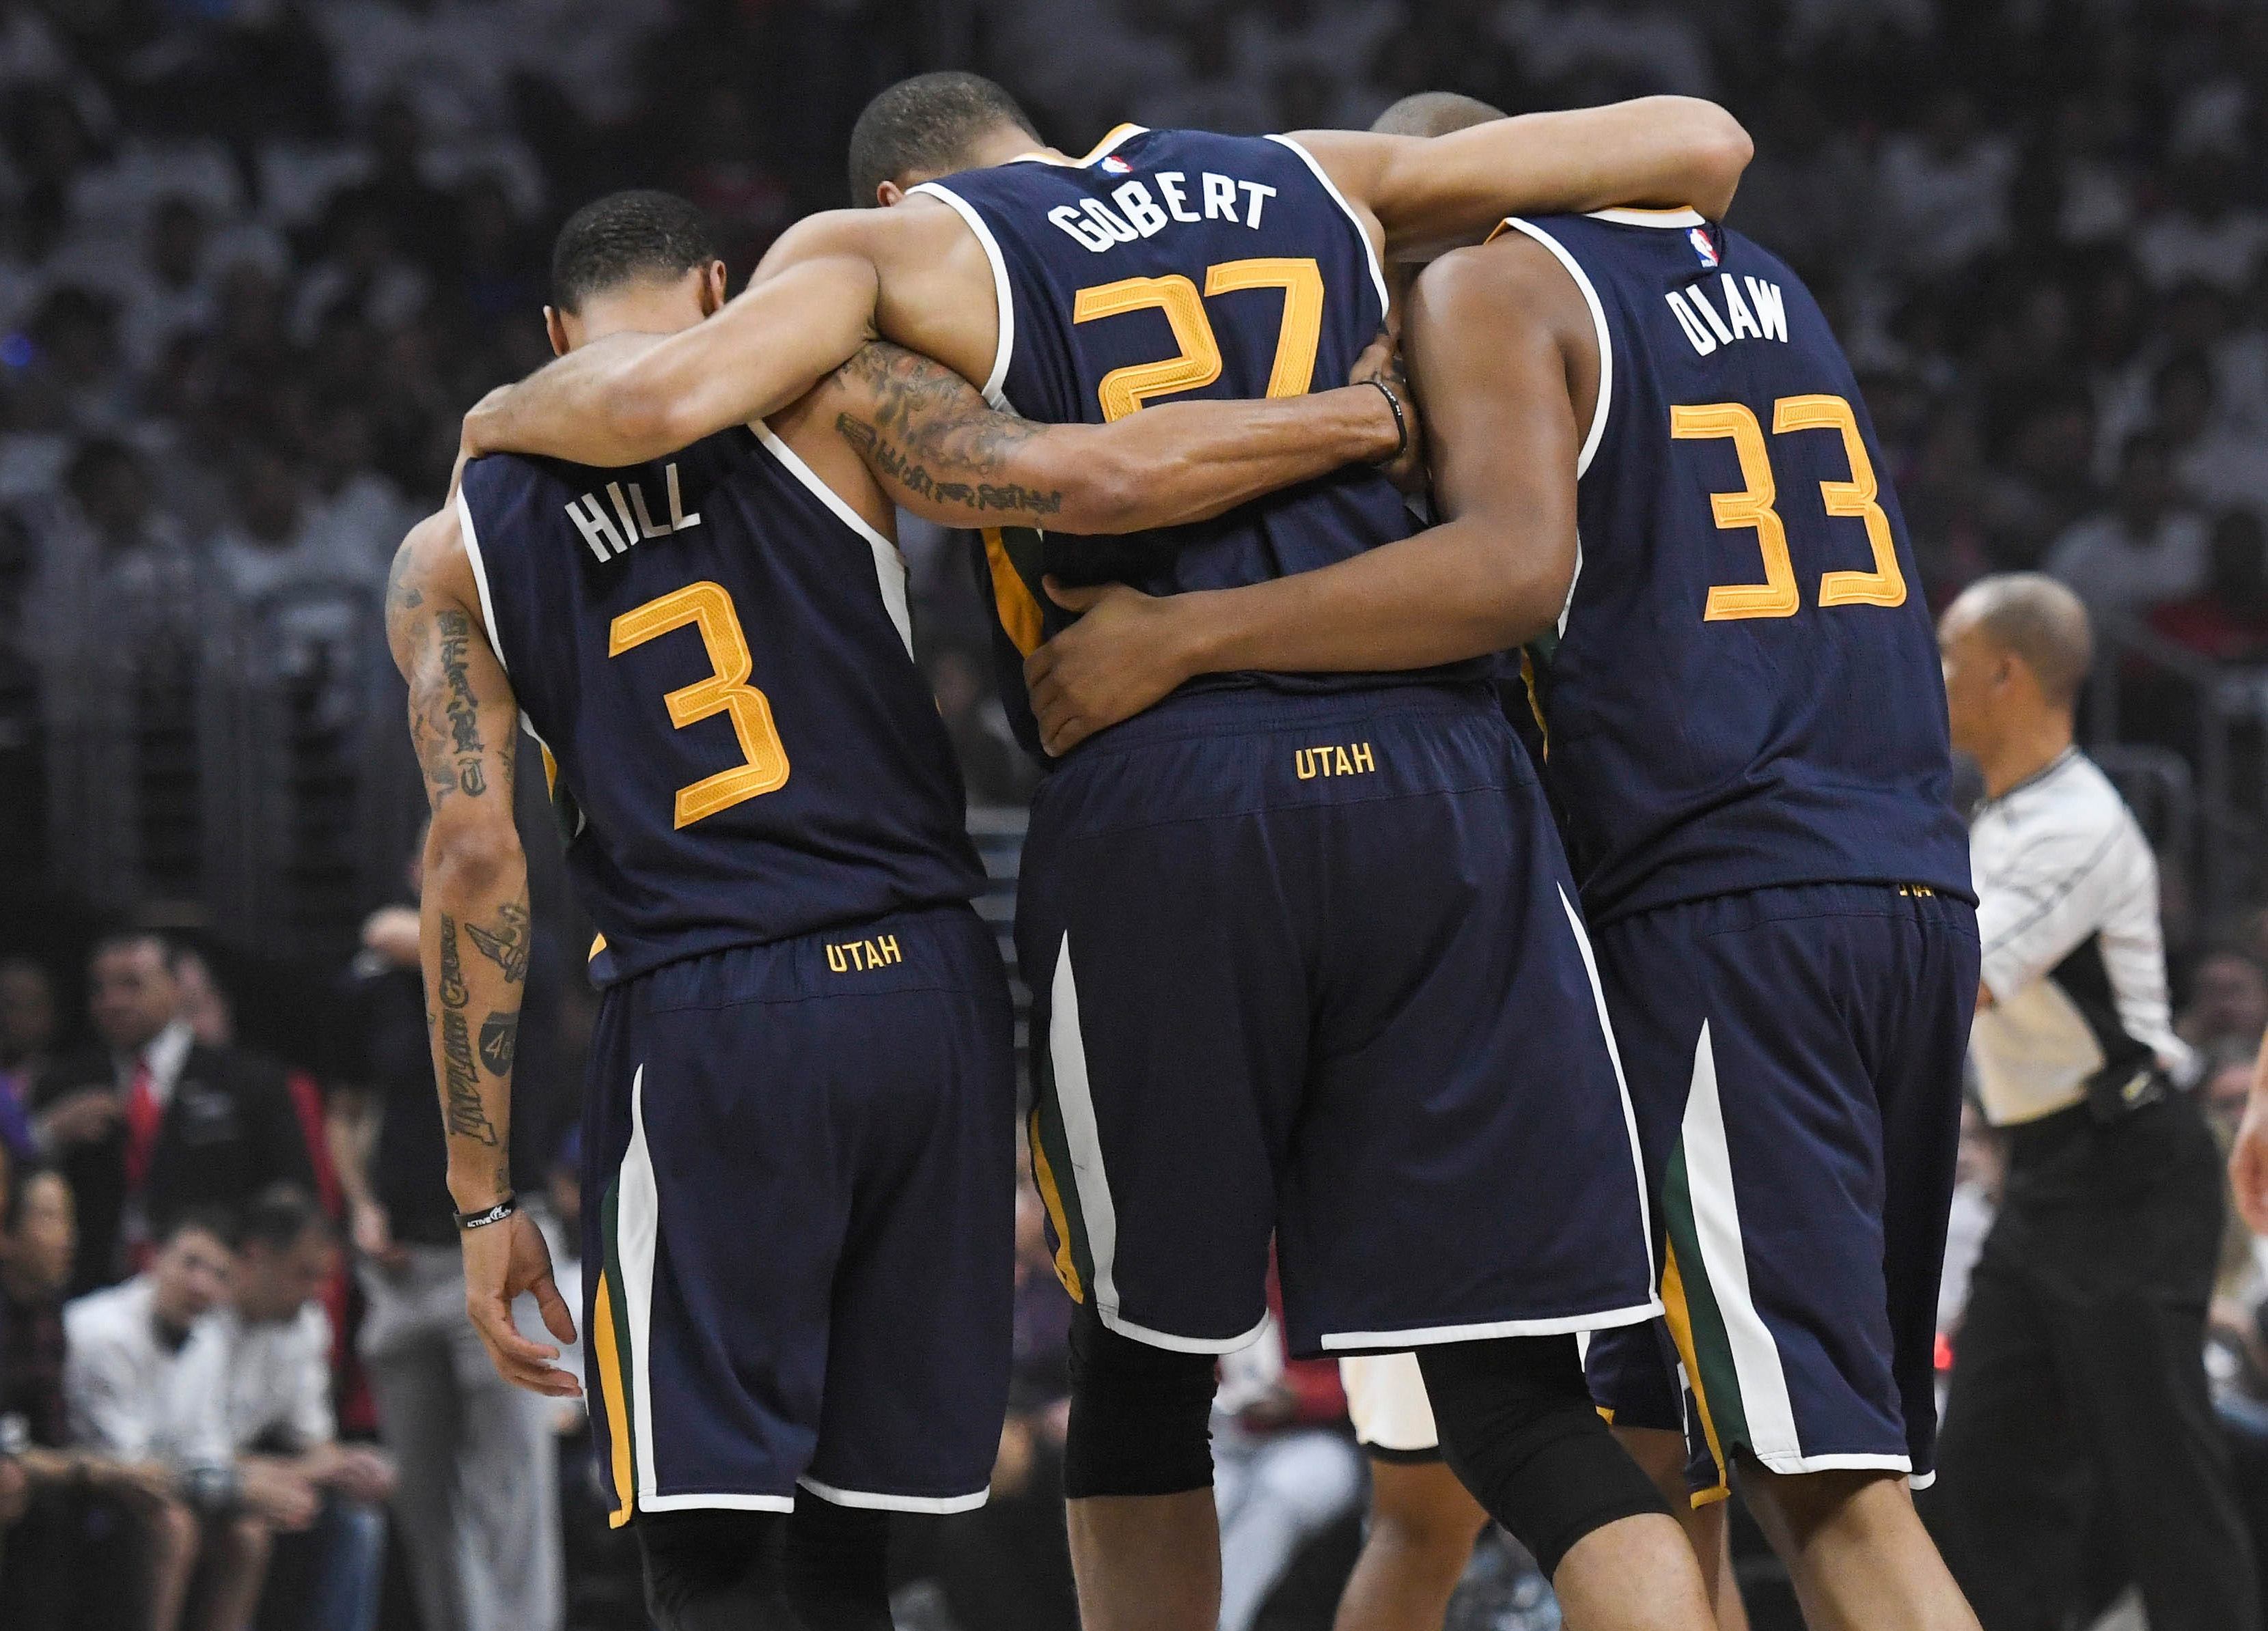 10015342-nba-playoffs-utah-jazz-at-los-angeles-clippers